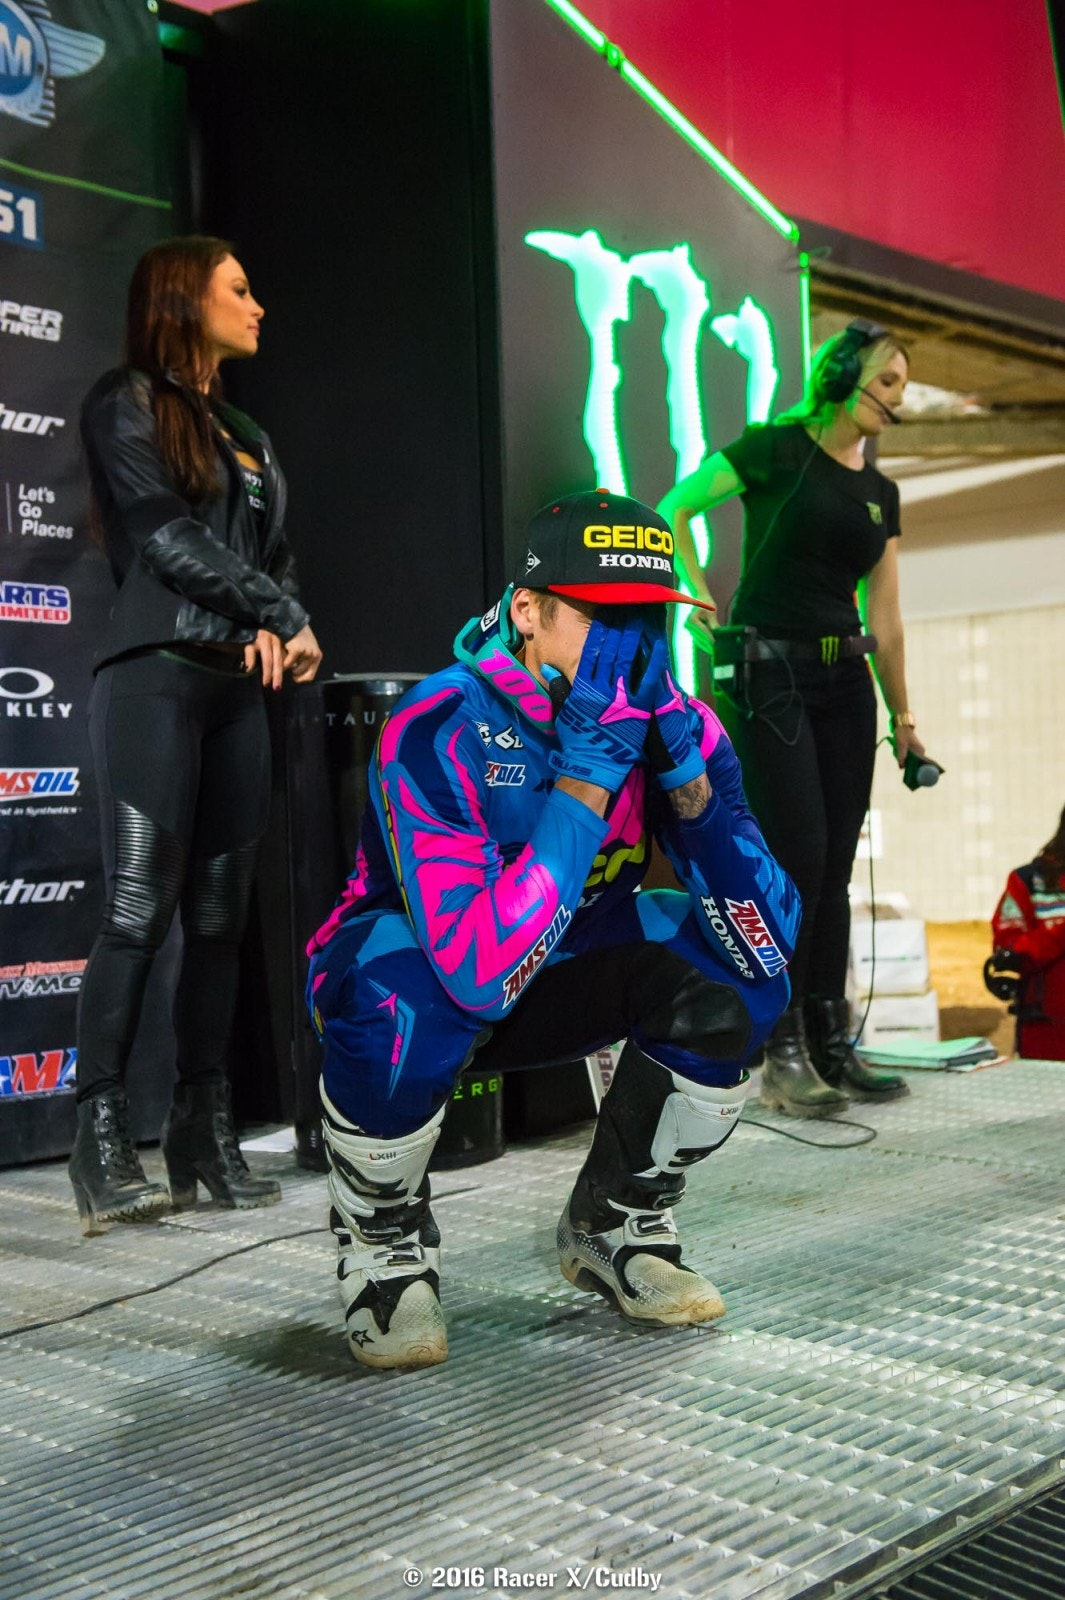 Craig once left the sport, but has now returned better than ever. This marked his first-ever race win, and you could tell how much it meant to him.